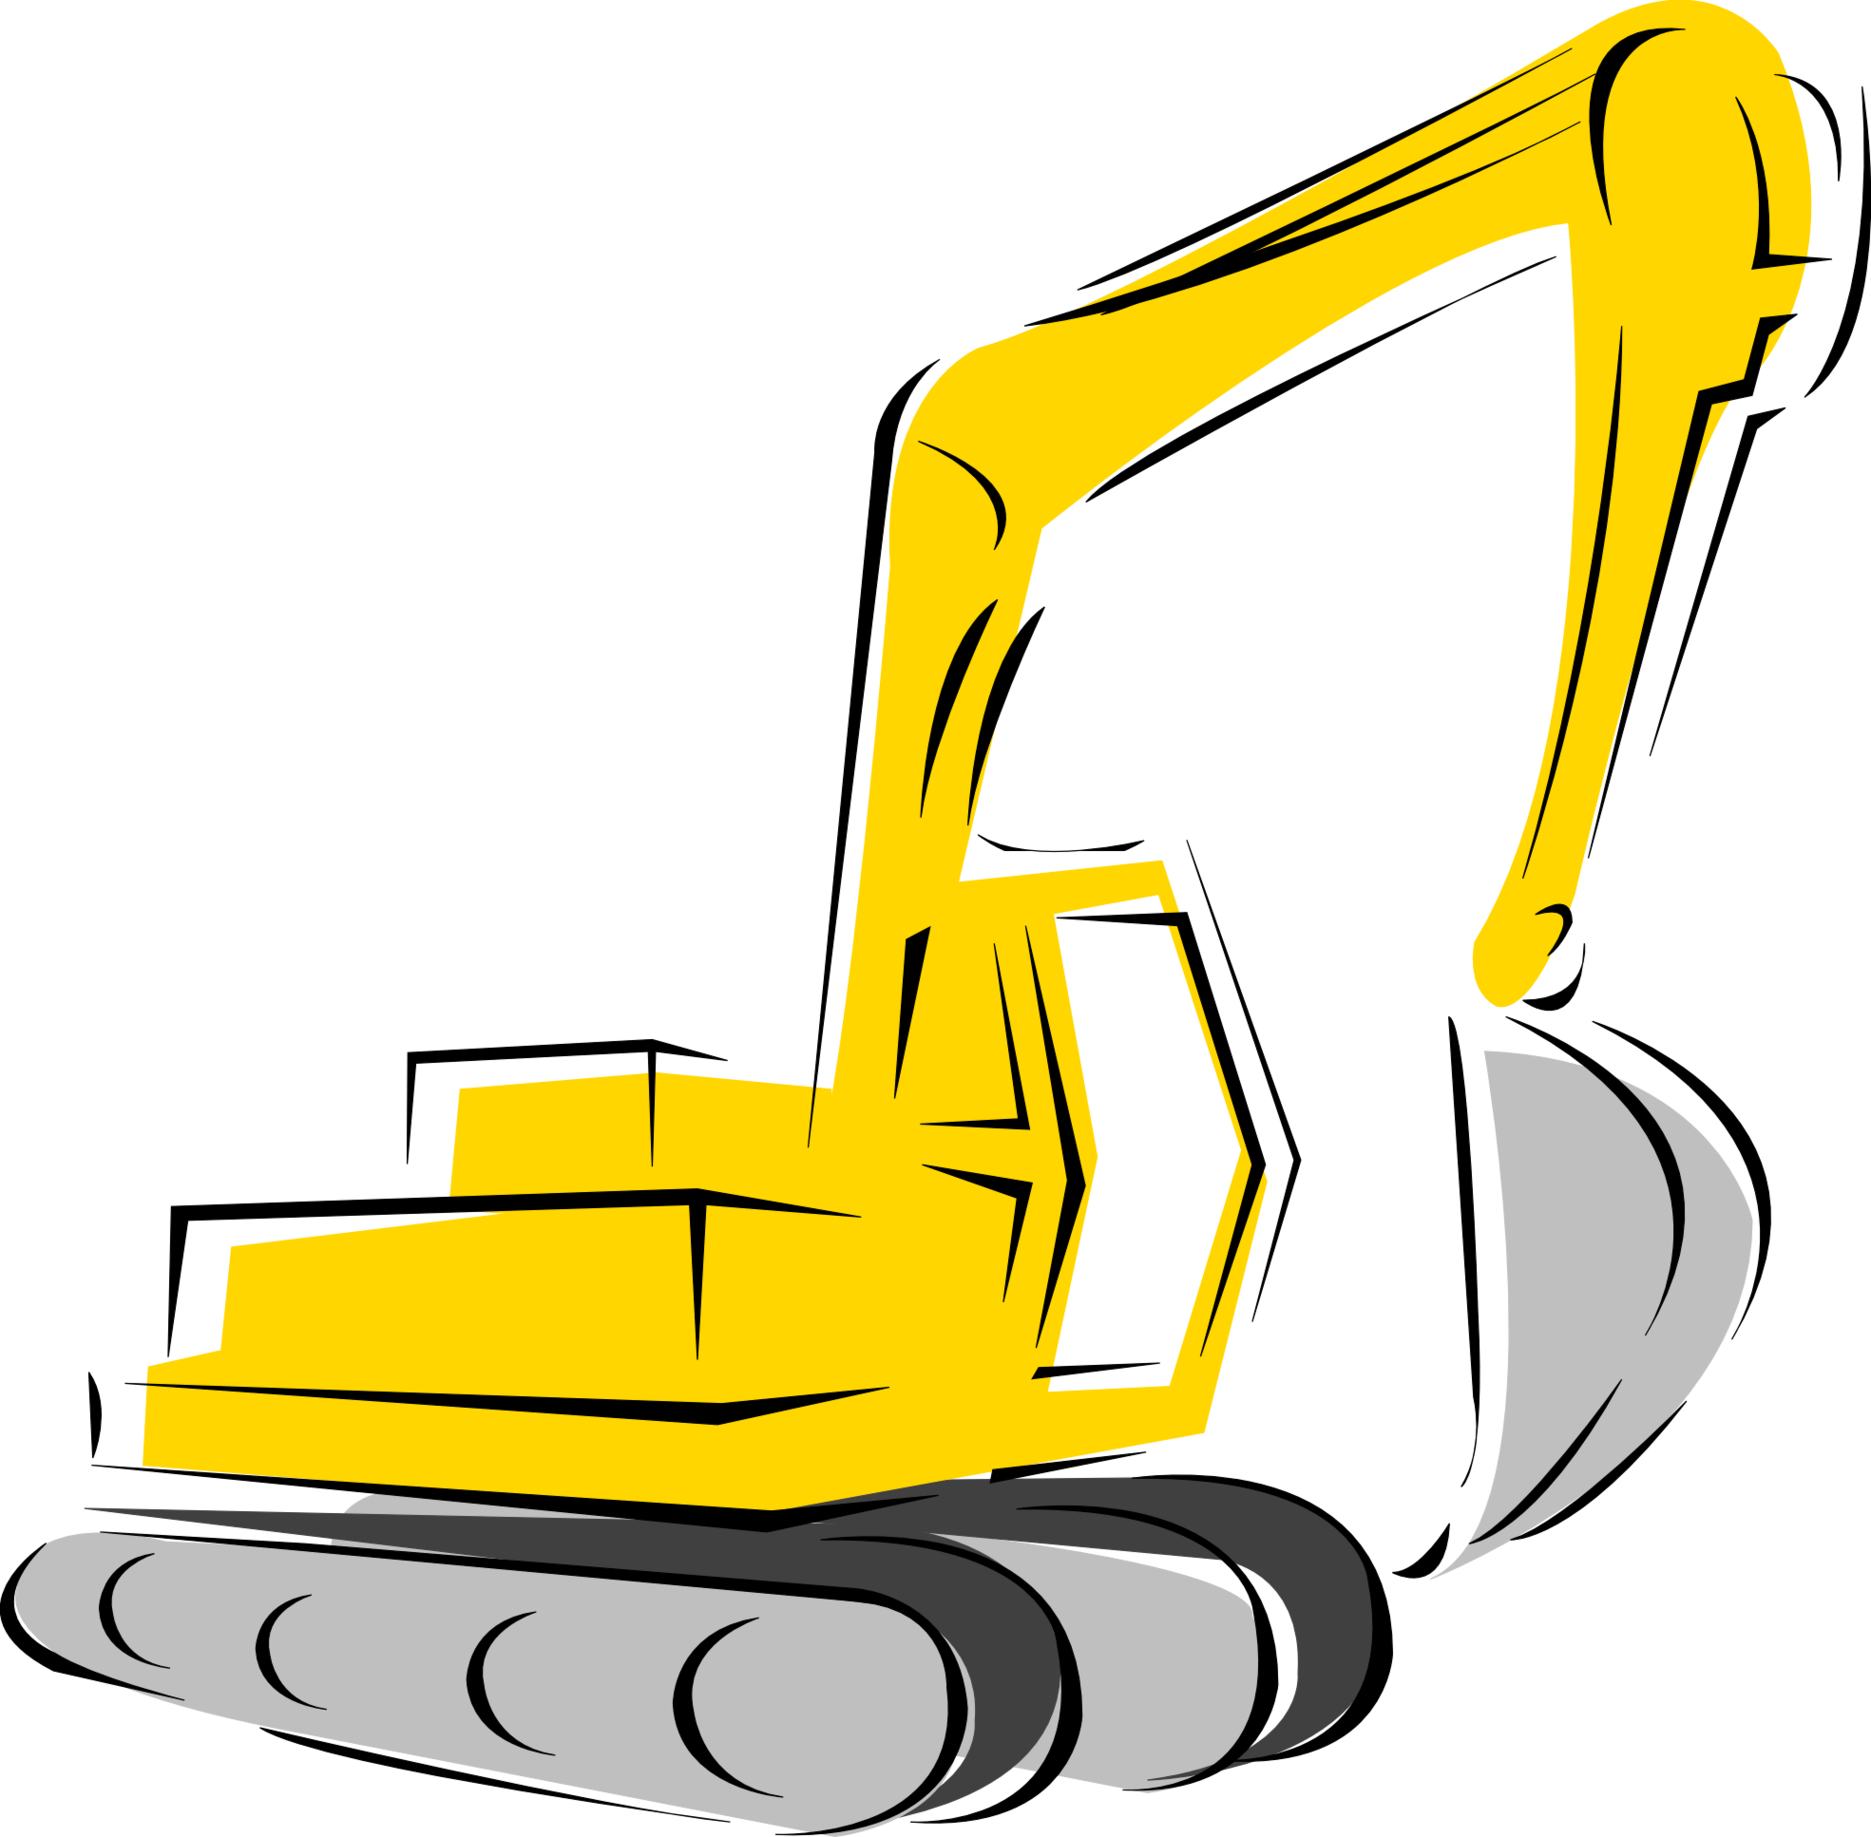 Construction site clipart clip freeuse Heavy Equipment Silhouette at GetDrawings.com | Free for personal ... clip freeuse